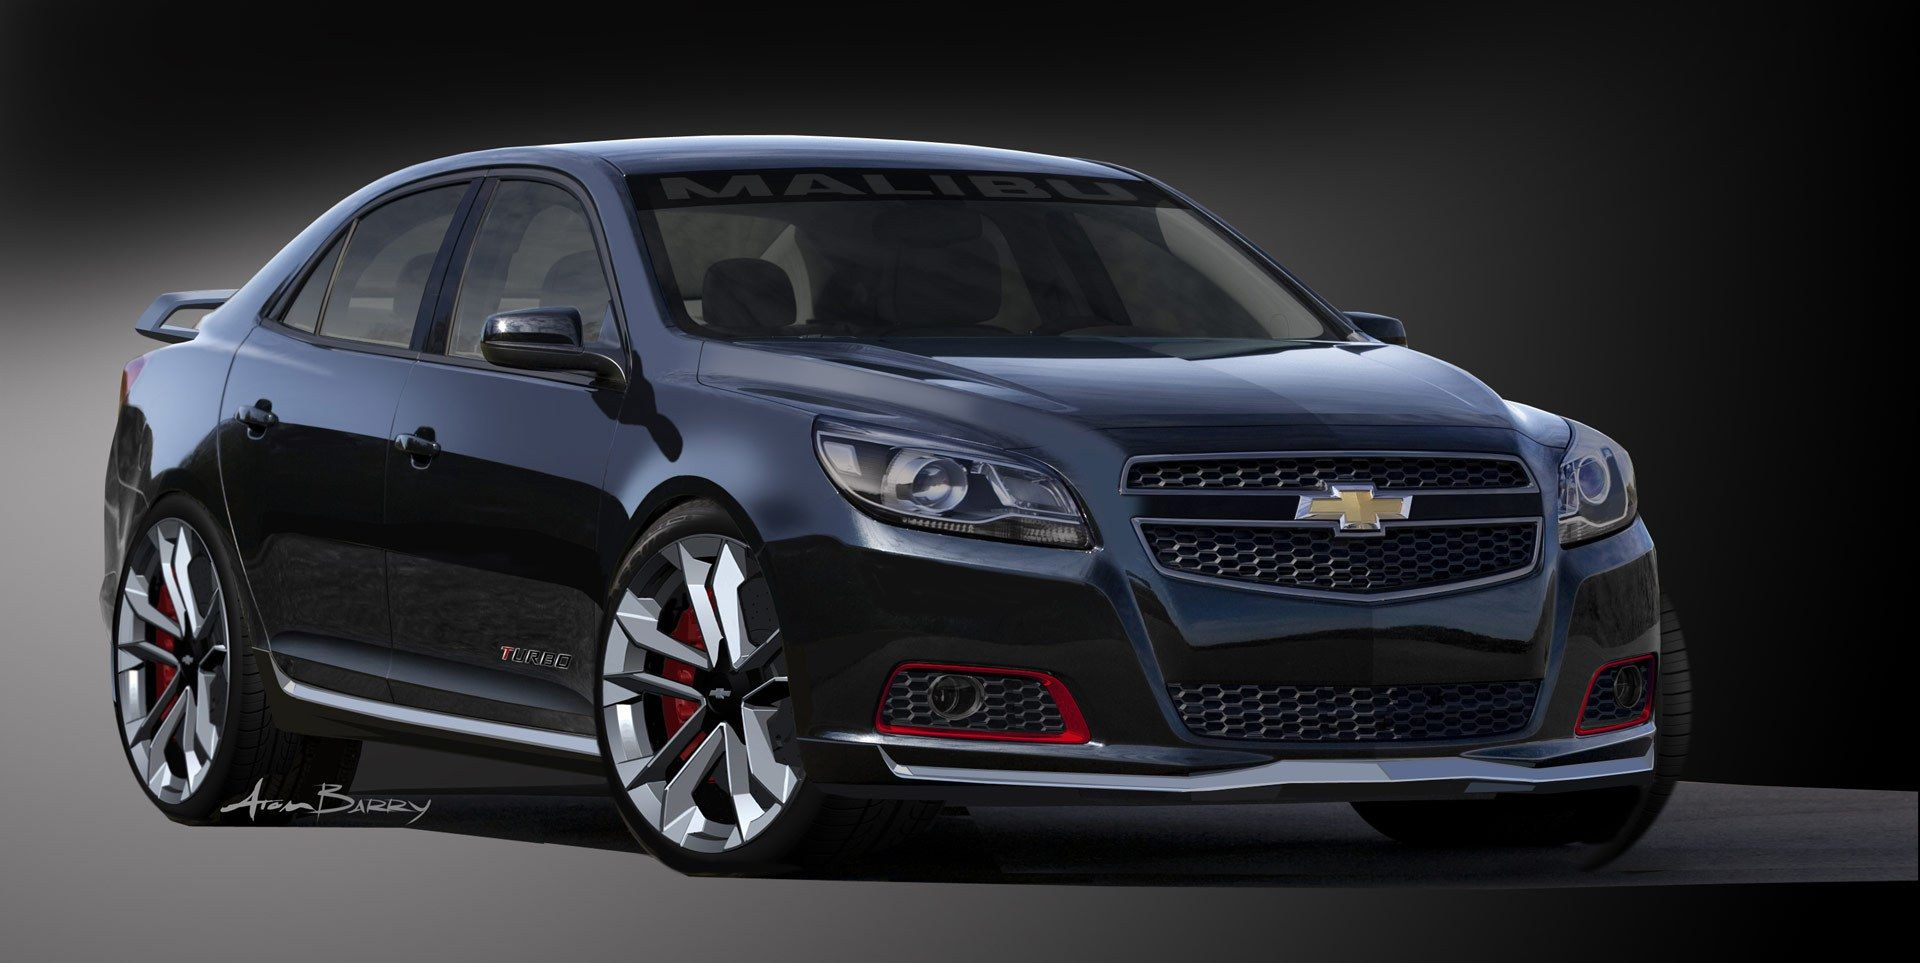 Chevy Malibu 2020 Review.Complete Car Info For 29 All New 2020 Chevy Malibu Wallpaper